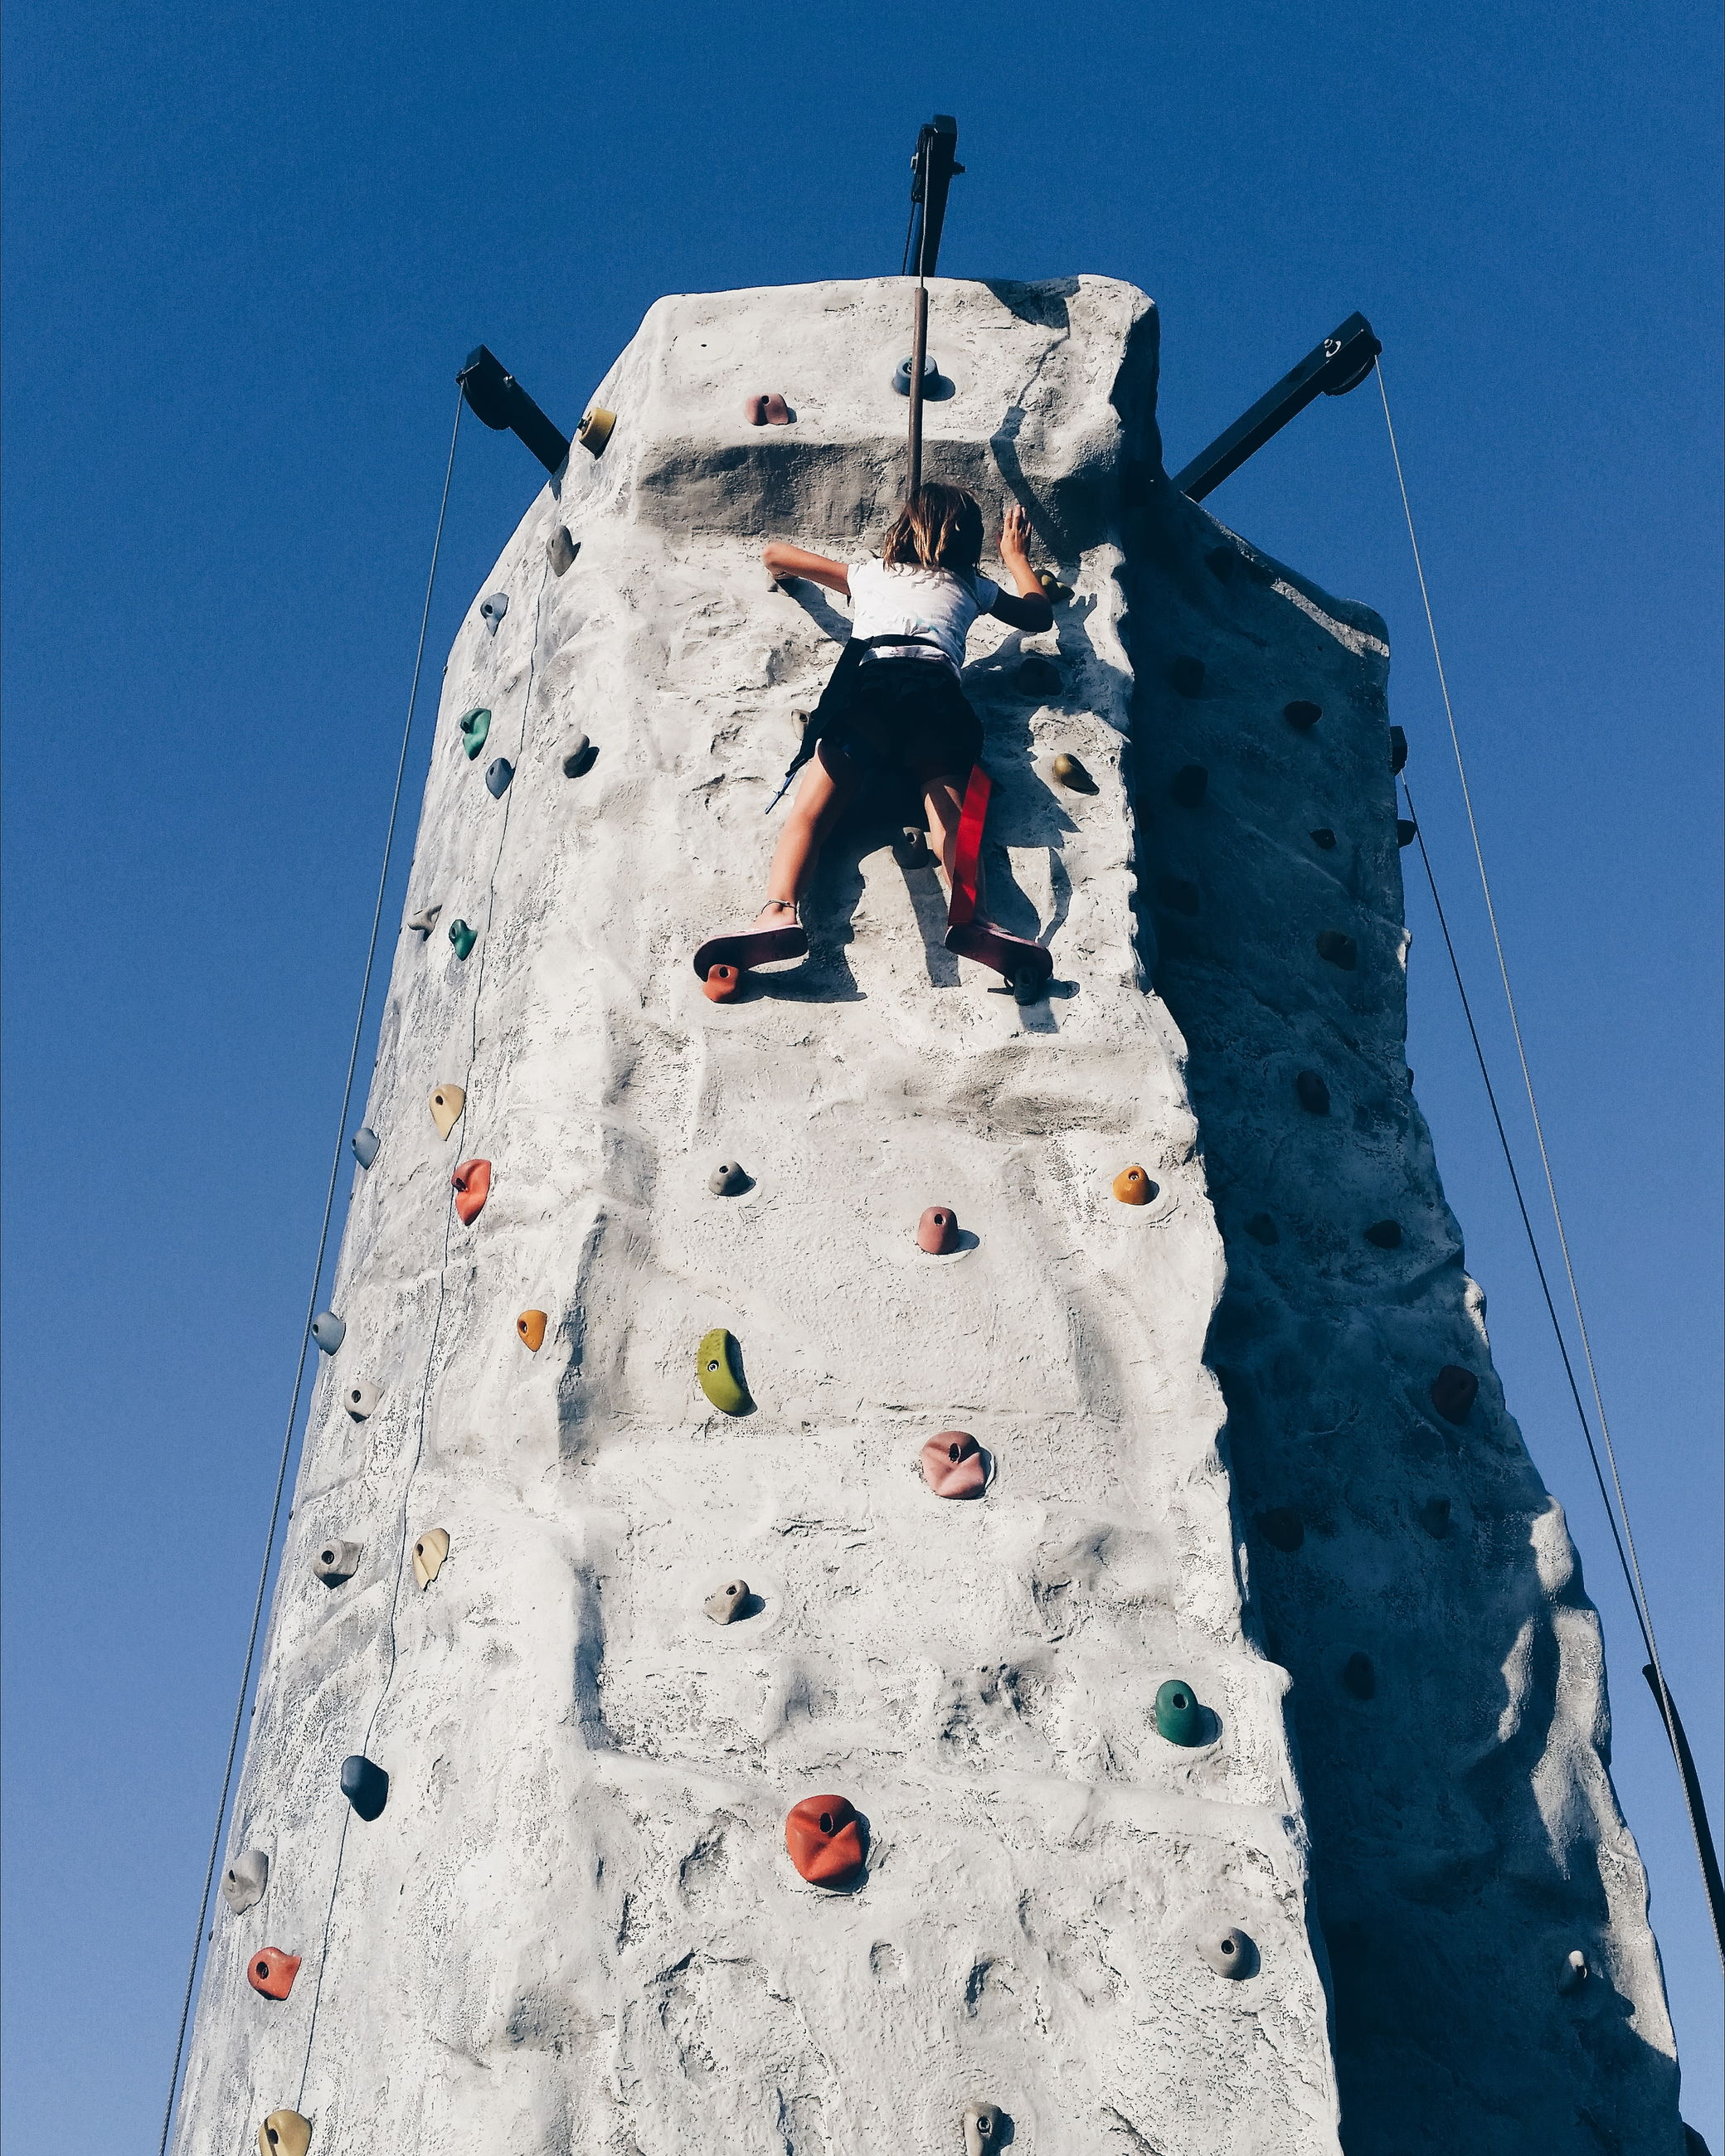 low angle view, climbing, day, sport, leisure activity, real people, sky, adventure, clear sky, climbing wall, blue, full length, outdoors, one person, extreme sports, people